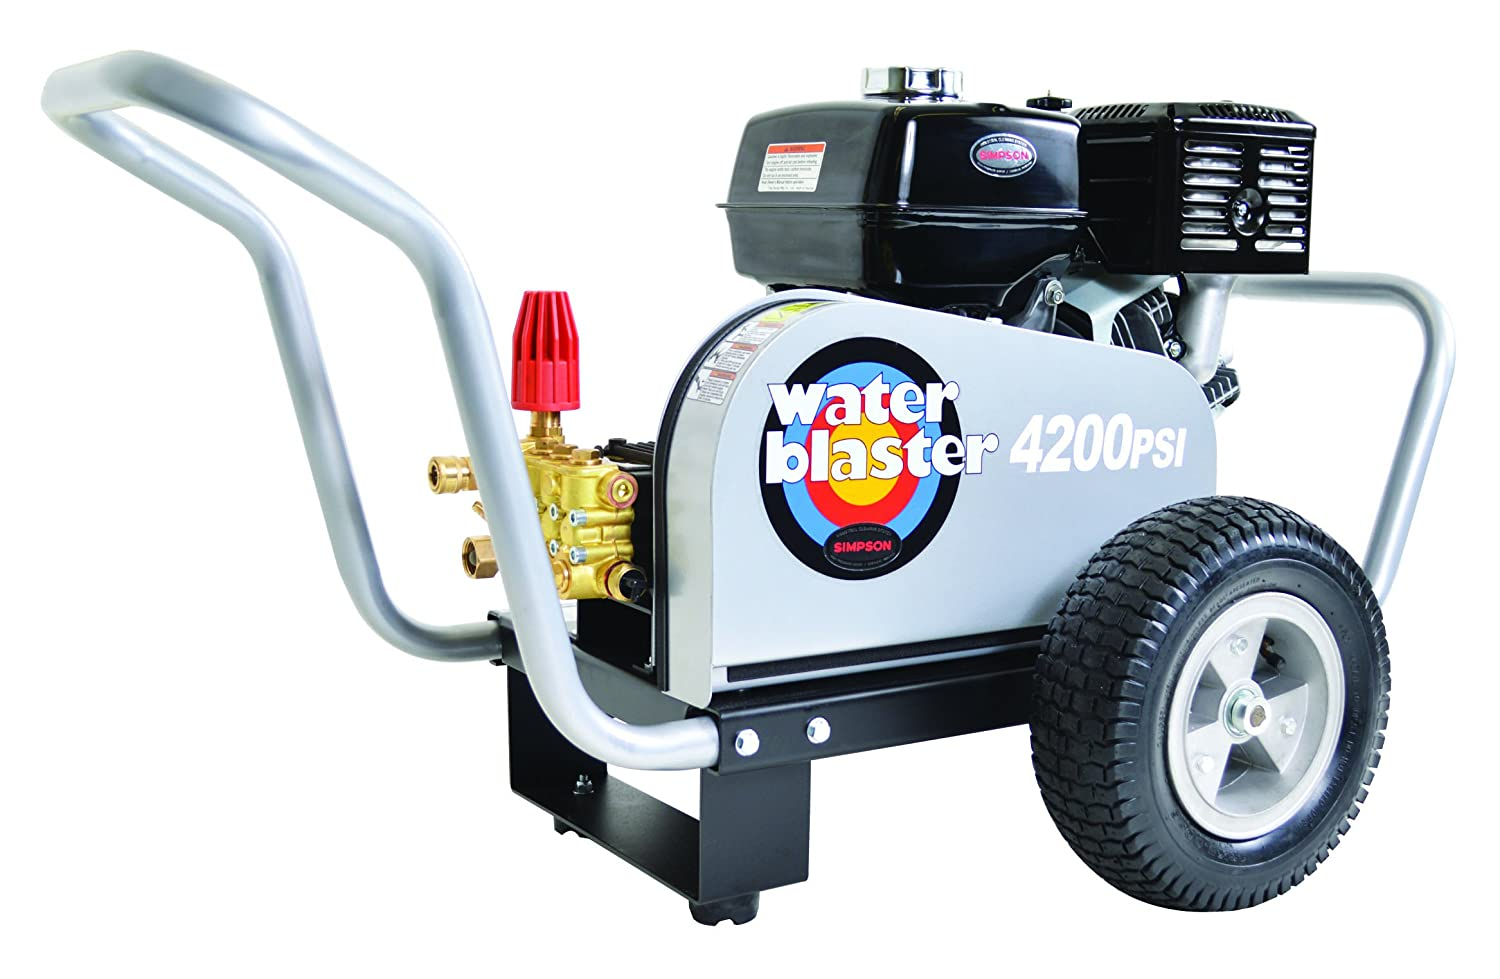 simpson pressure washer 4200 psi